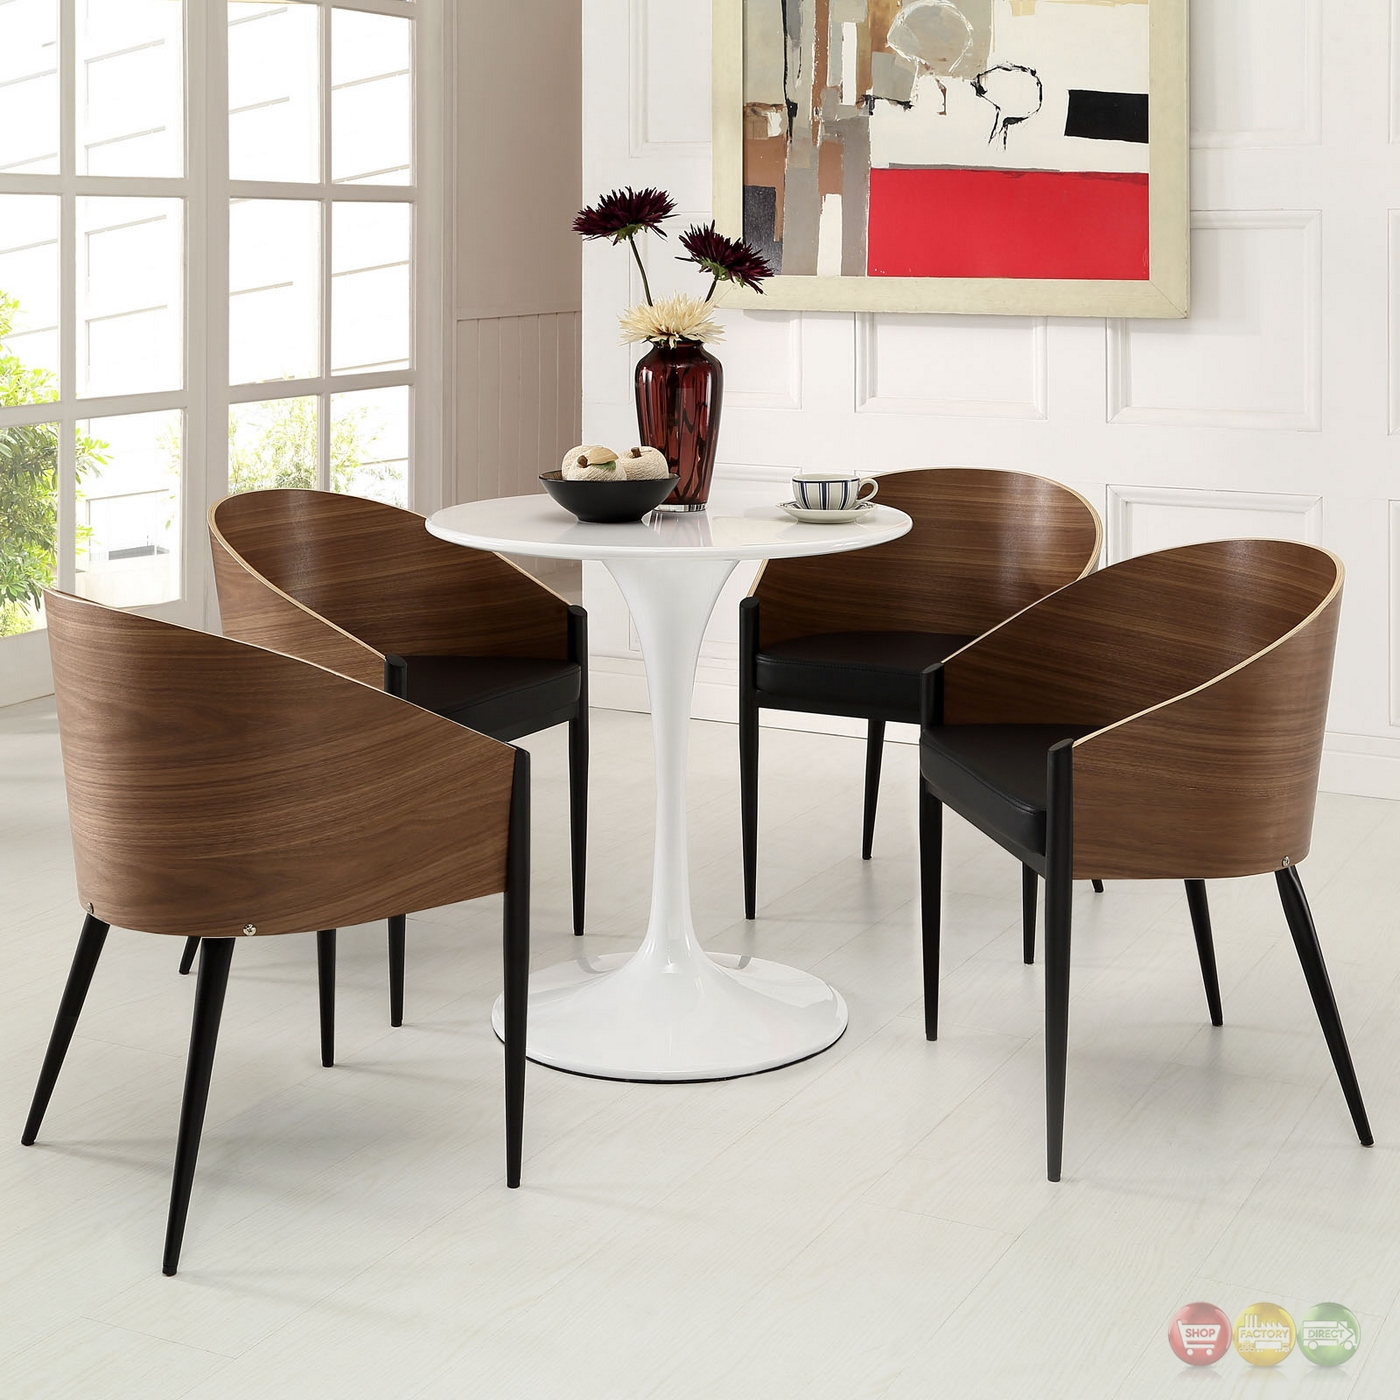 Set Of 4, Cooper Wood Grain Wide Curved Back Dining Chairs ...